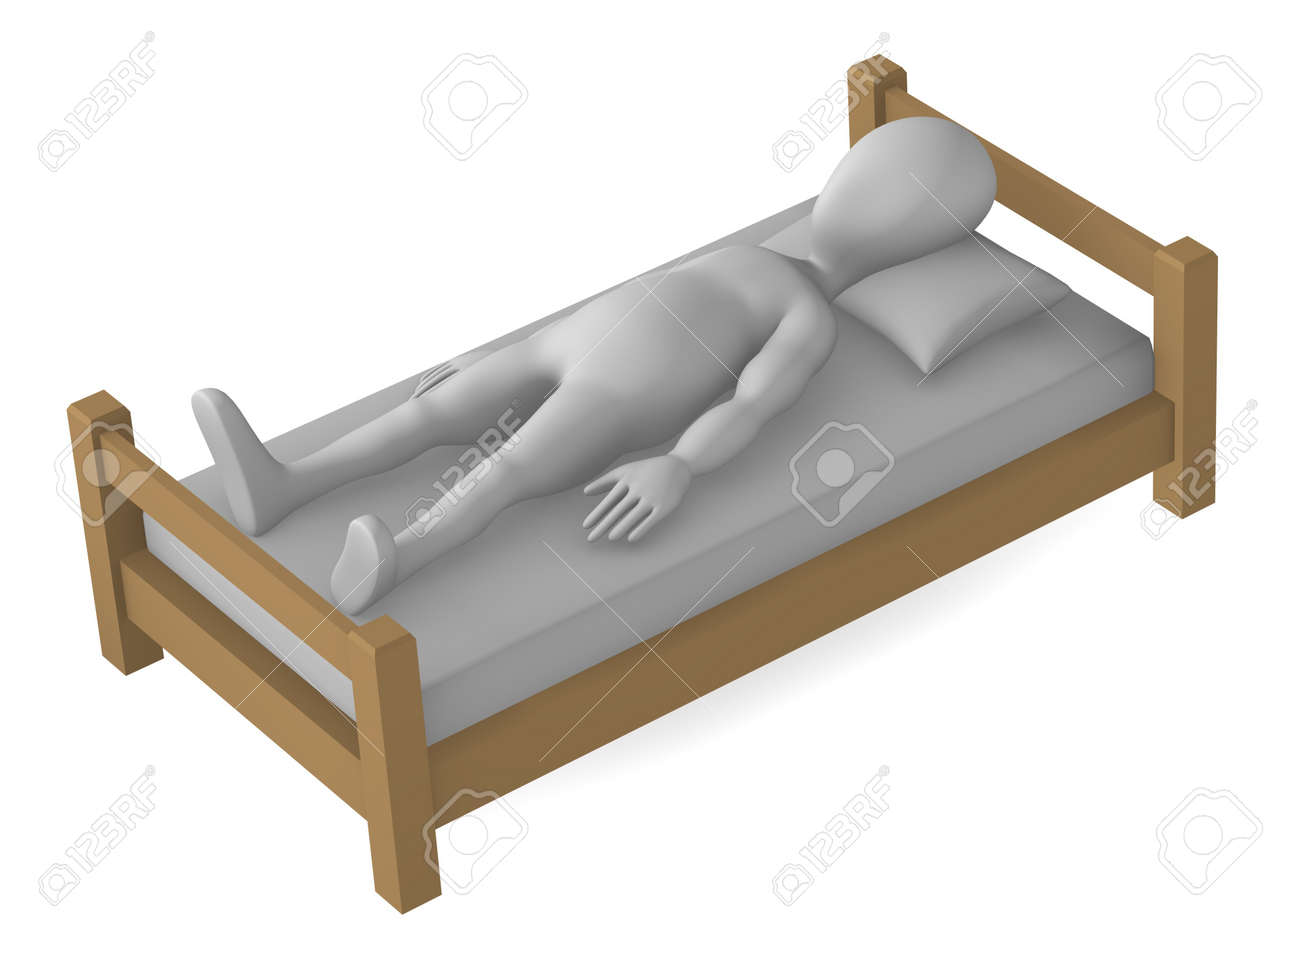 3d render of cartoon character in bed Stock Photo - 12958201